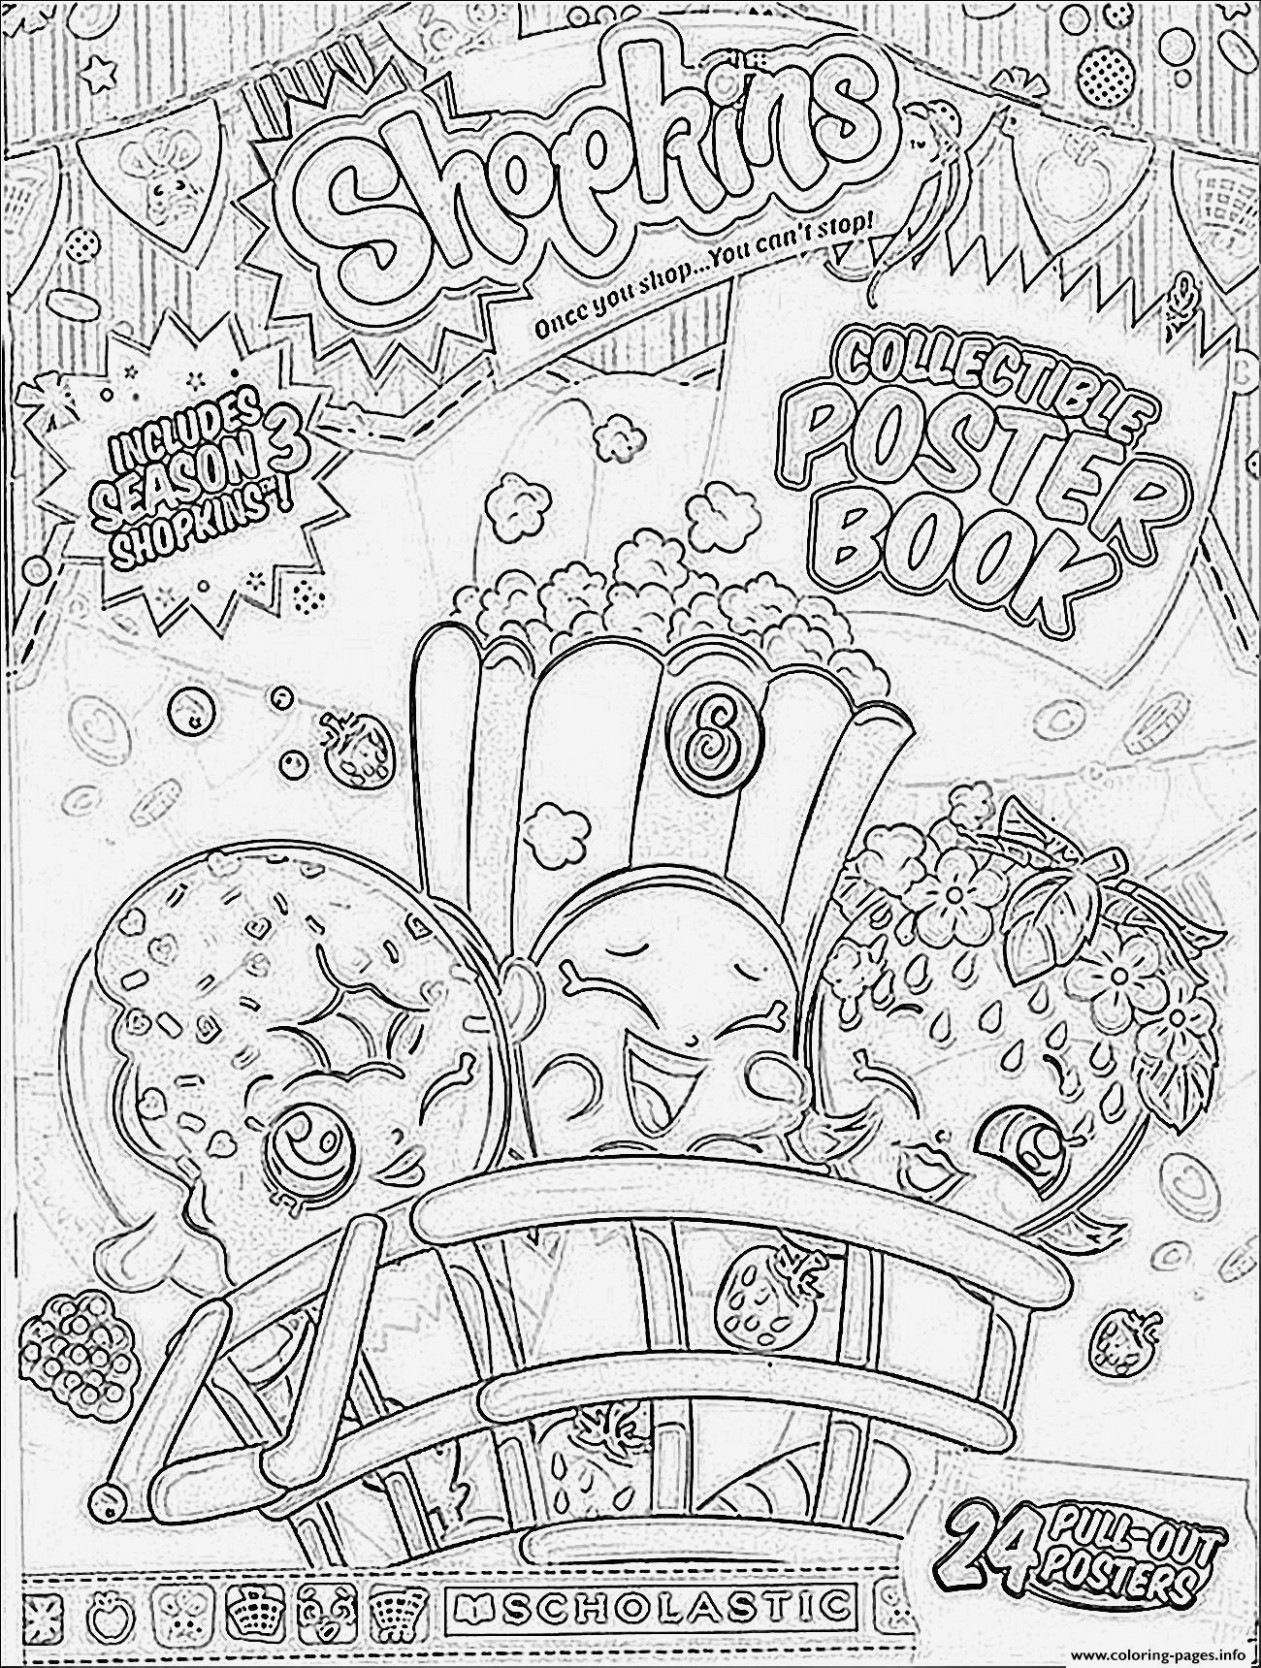 Www.colouring Pages Cool Coloring Book 12 Printable Color Book ...